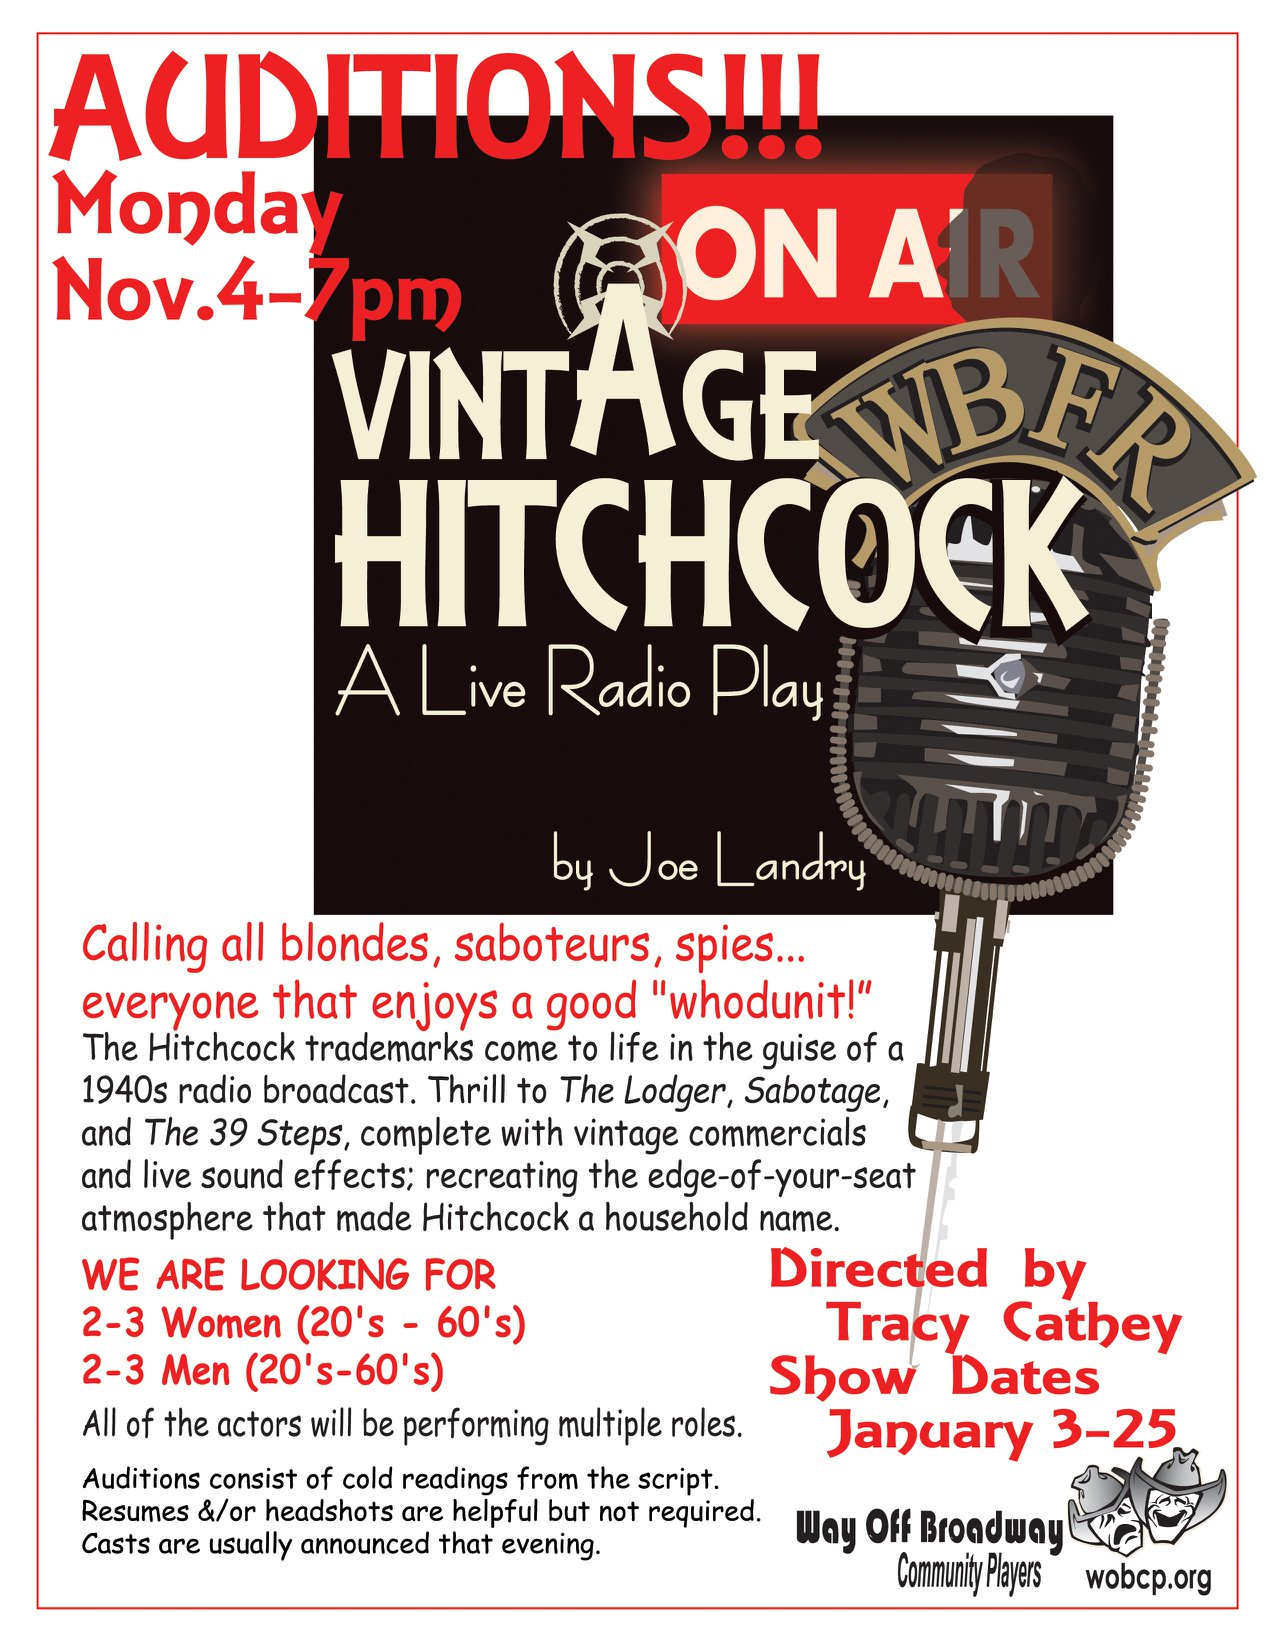 Auditions for Vintage Hitchcock: A Live Radio Play, by Way Off Broadway Community Players